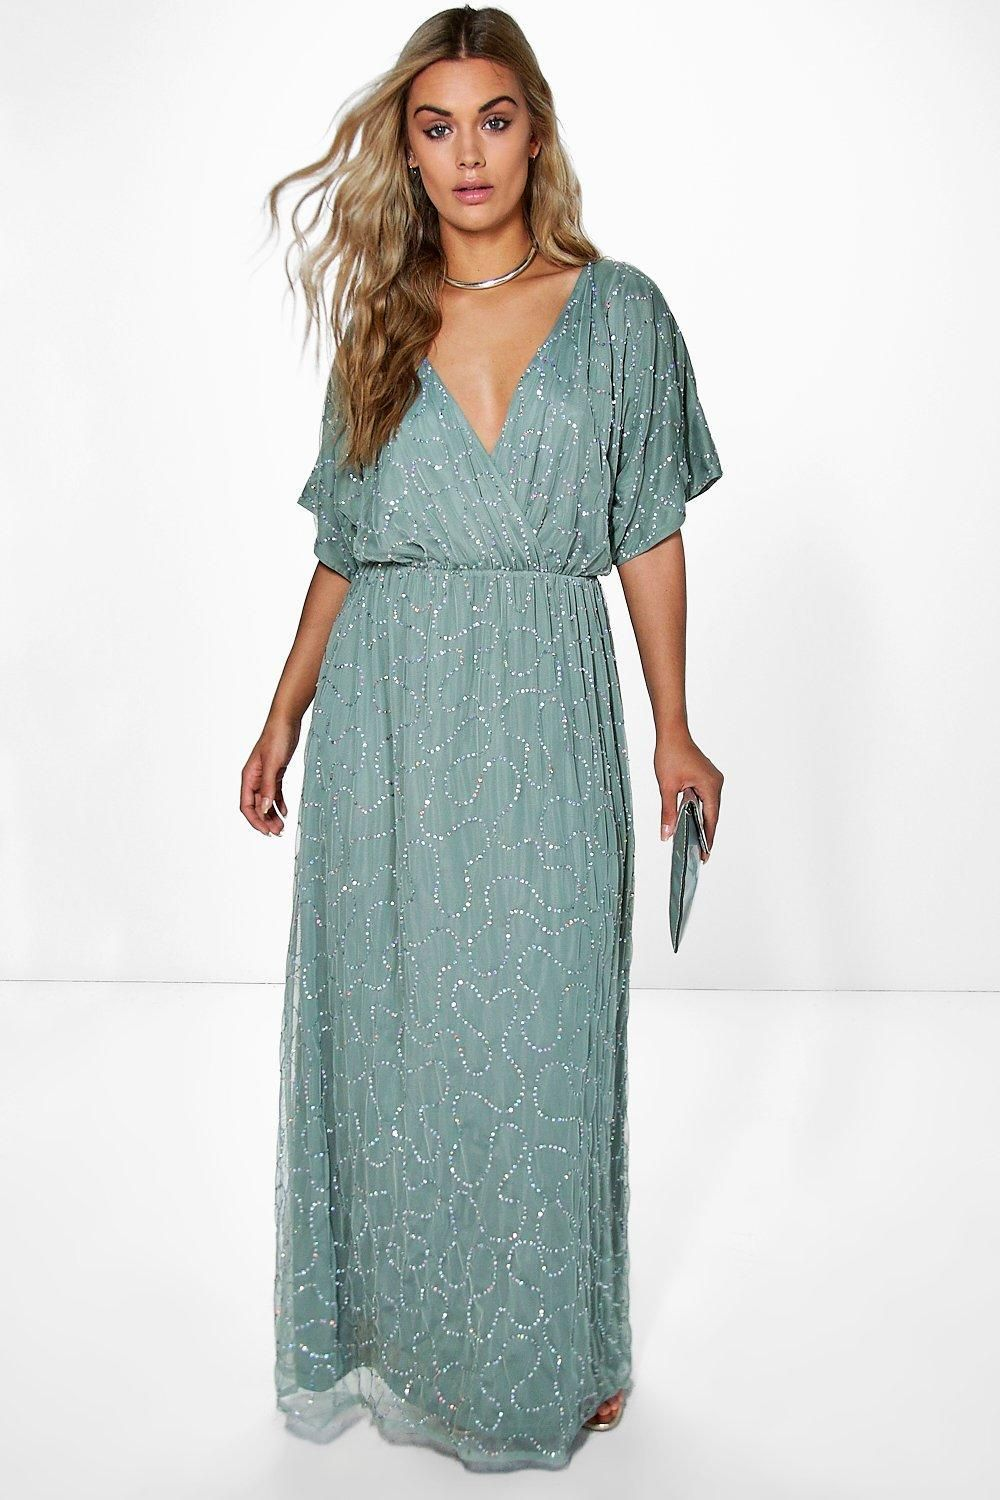 Boohoo Plus You Ll Find Full On Fashion For The Fuller Figure With The Boohoo Plus Range Deliveri Maxi Dress Plus Size Wedding Guest Dresses Sequin Maxi Dress [ 1500 x 1000 Pixel ]